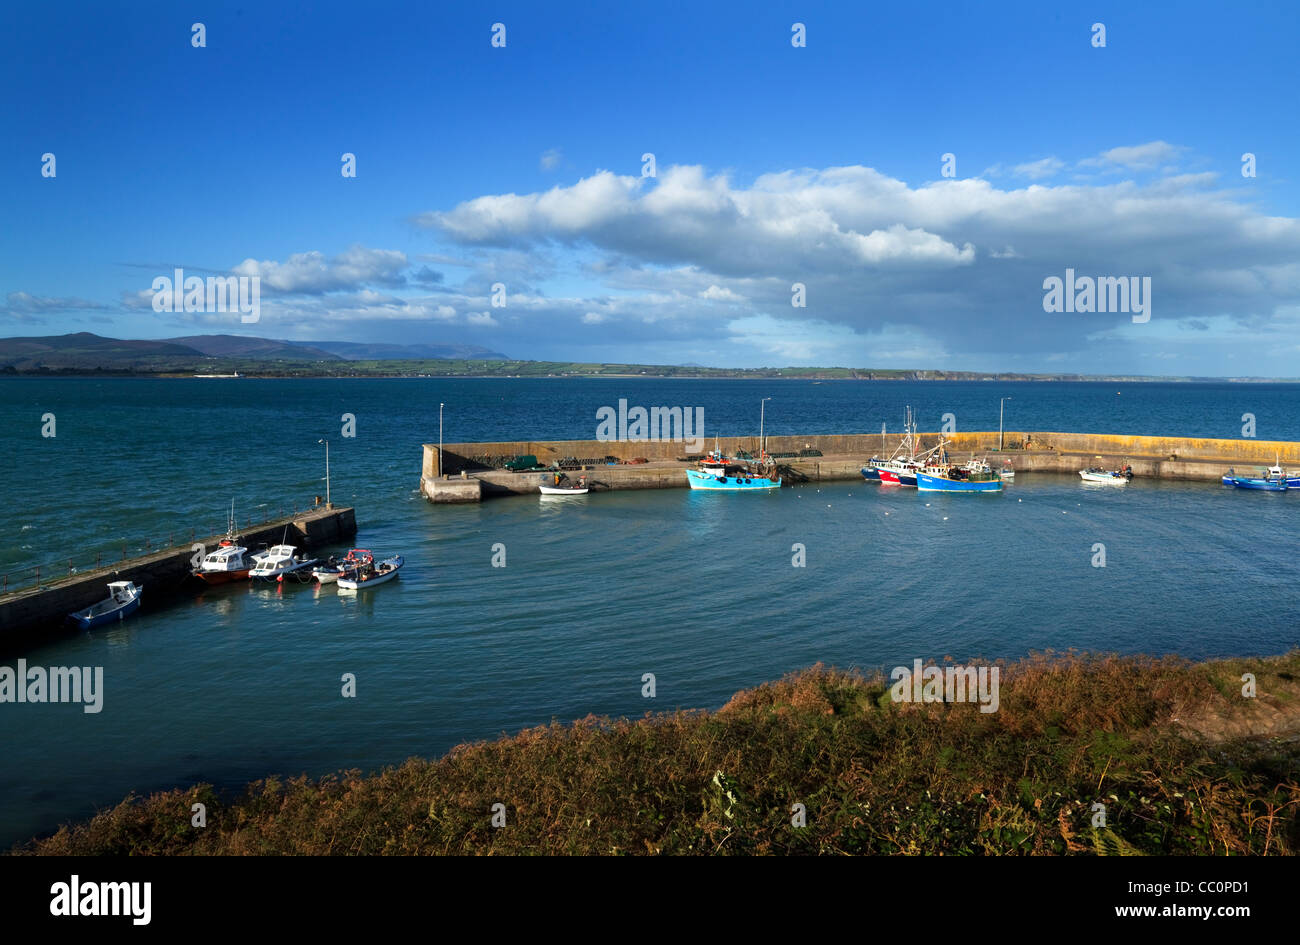 Helvick Harbour, On the An Rinn (Ring) Peninsula, County Waterford, Ireland - Stock Image